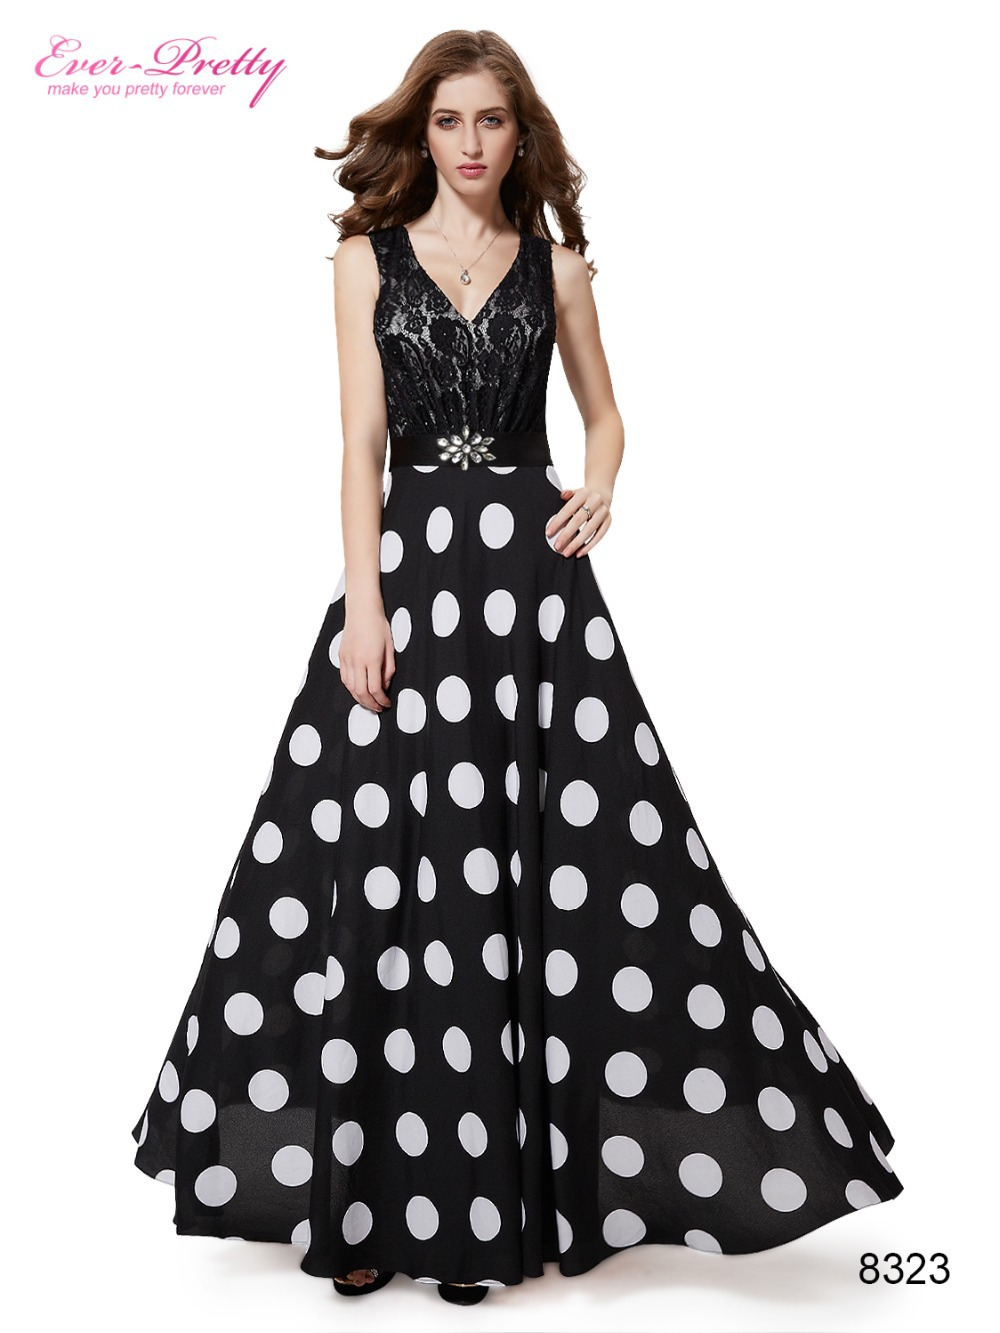 Maxi Long Formal Evening Dresses Ever Pretty HE08323BK Sexy V neck Black Lace Polka Dotted Special